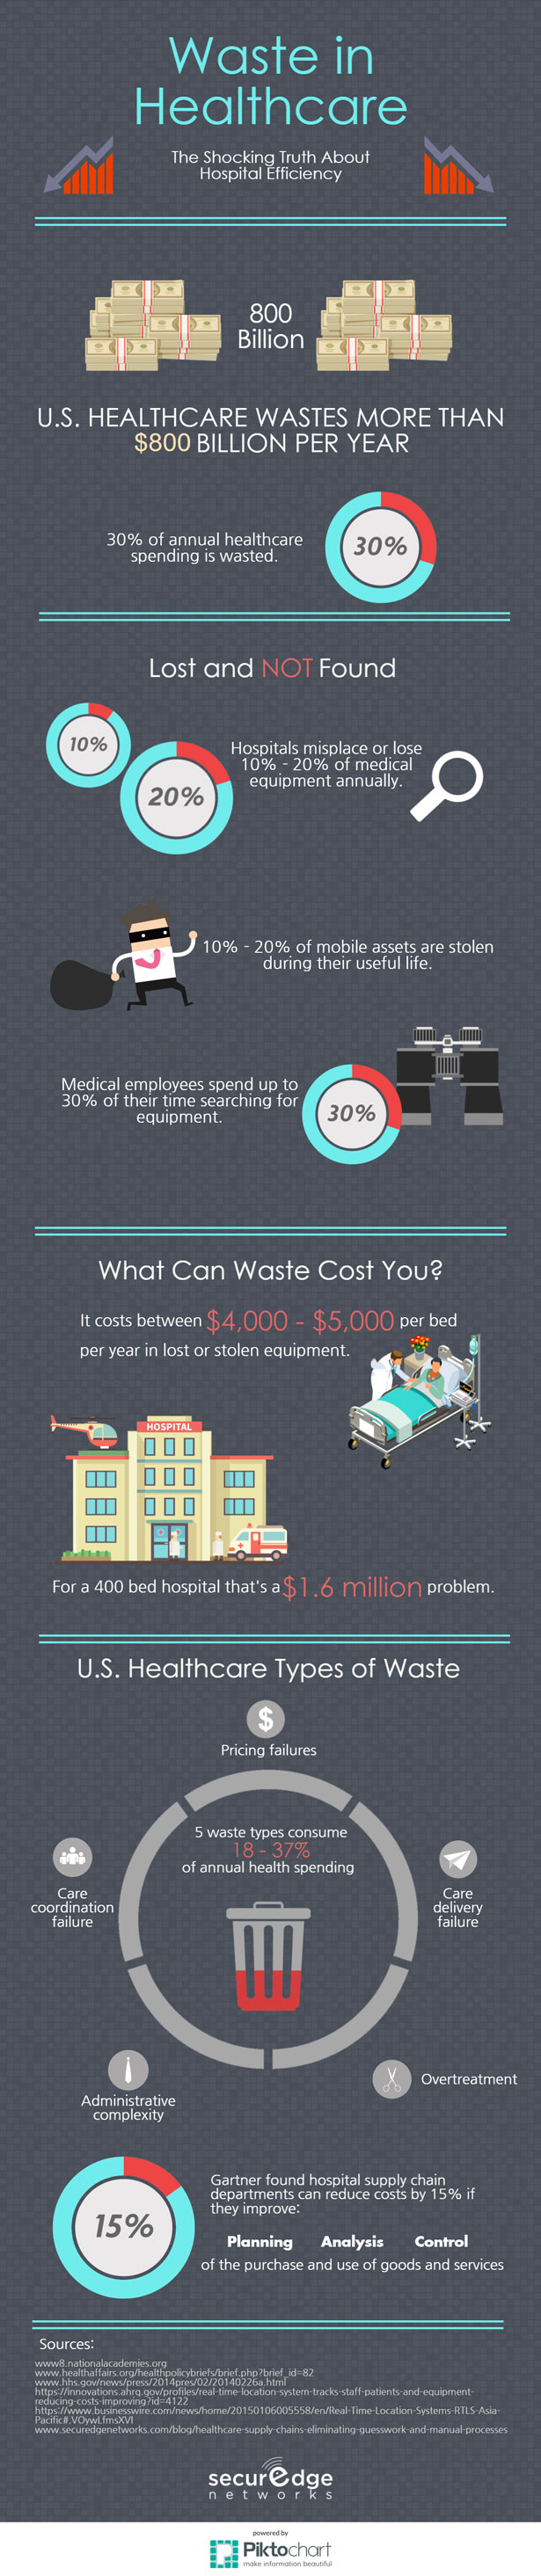 waste-in-healthcare-infographic-hospital-wireless-network-design-tips.jpg